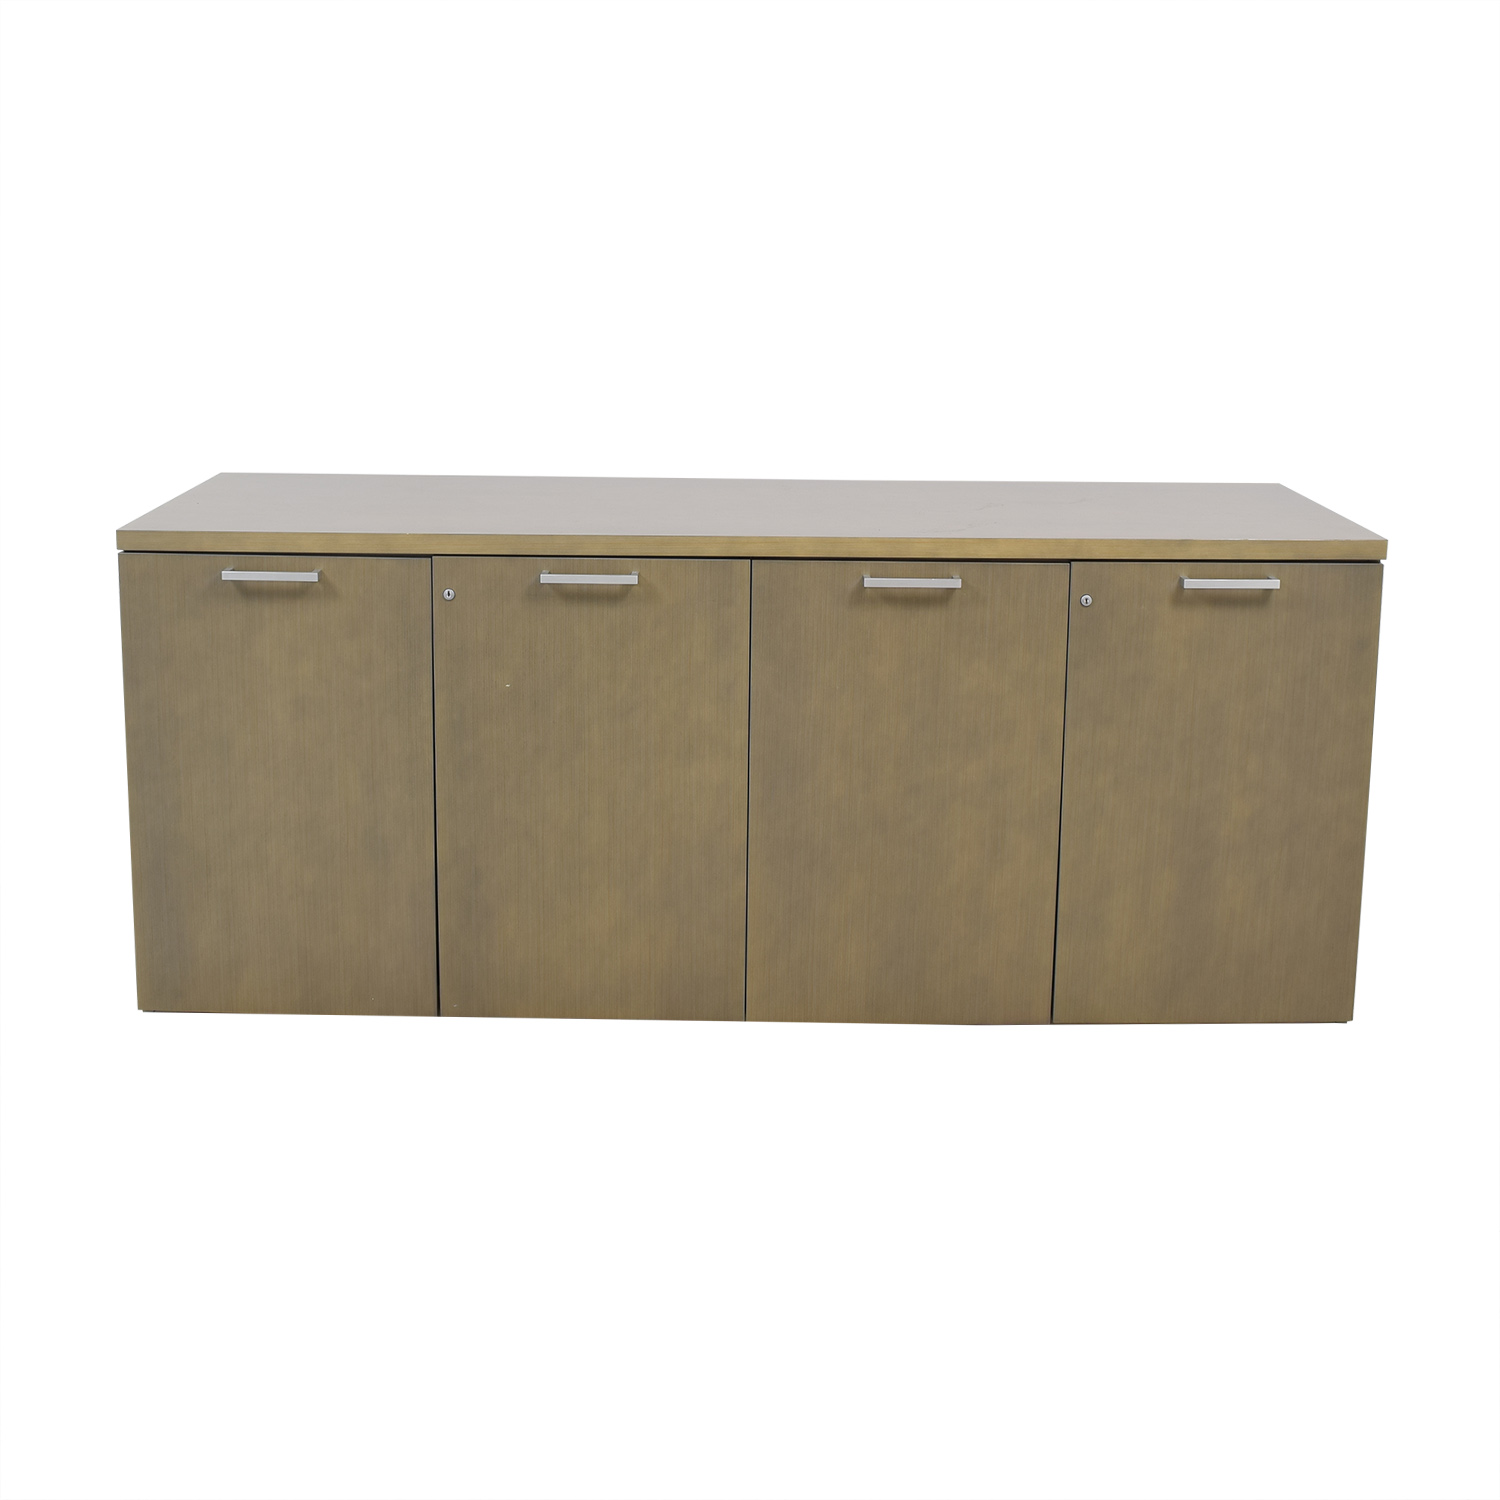 Office Furniture Heaven Office Furniture Heaven Storage Credenza coupon